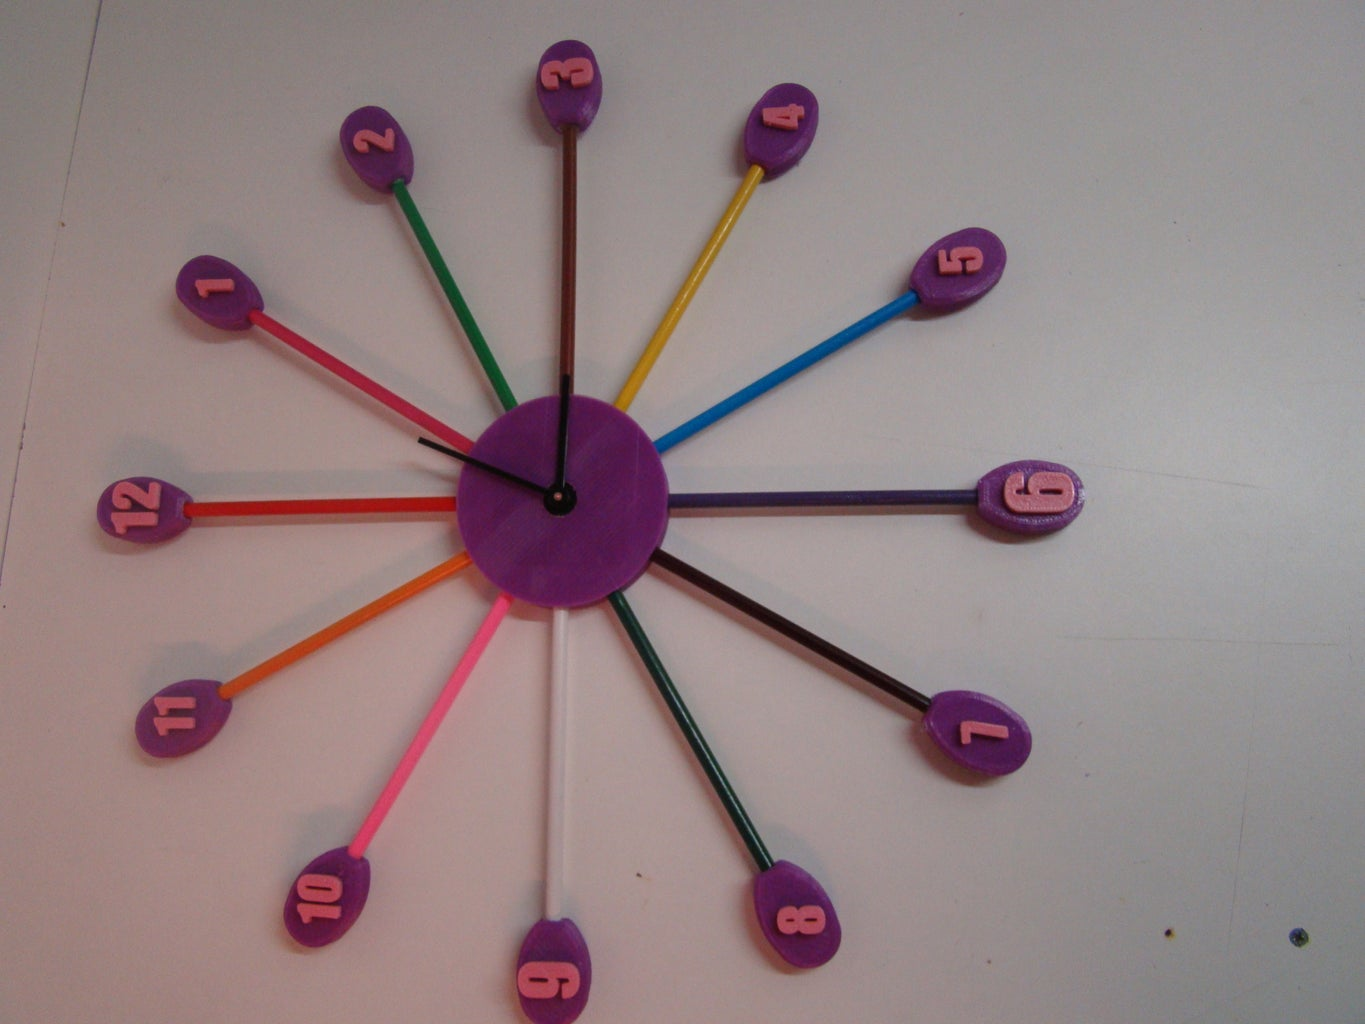 3D Printed Wall Clock With Lots of Colors.